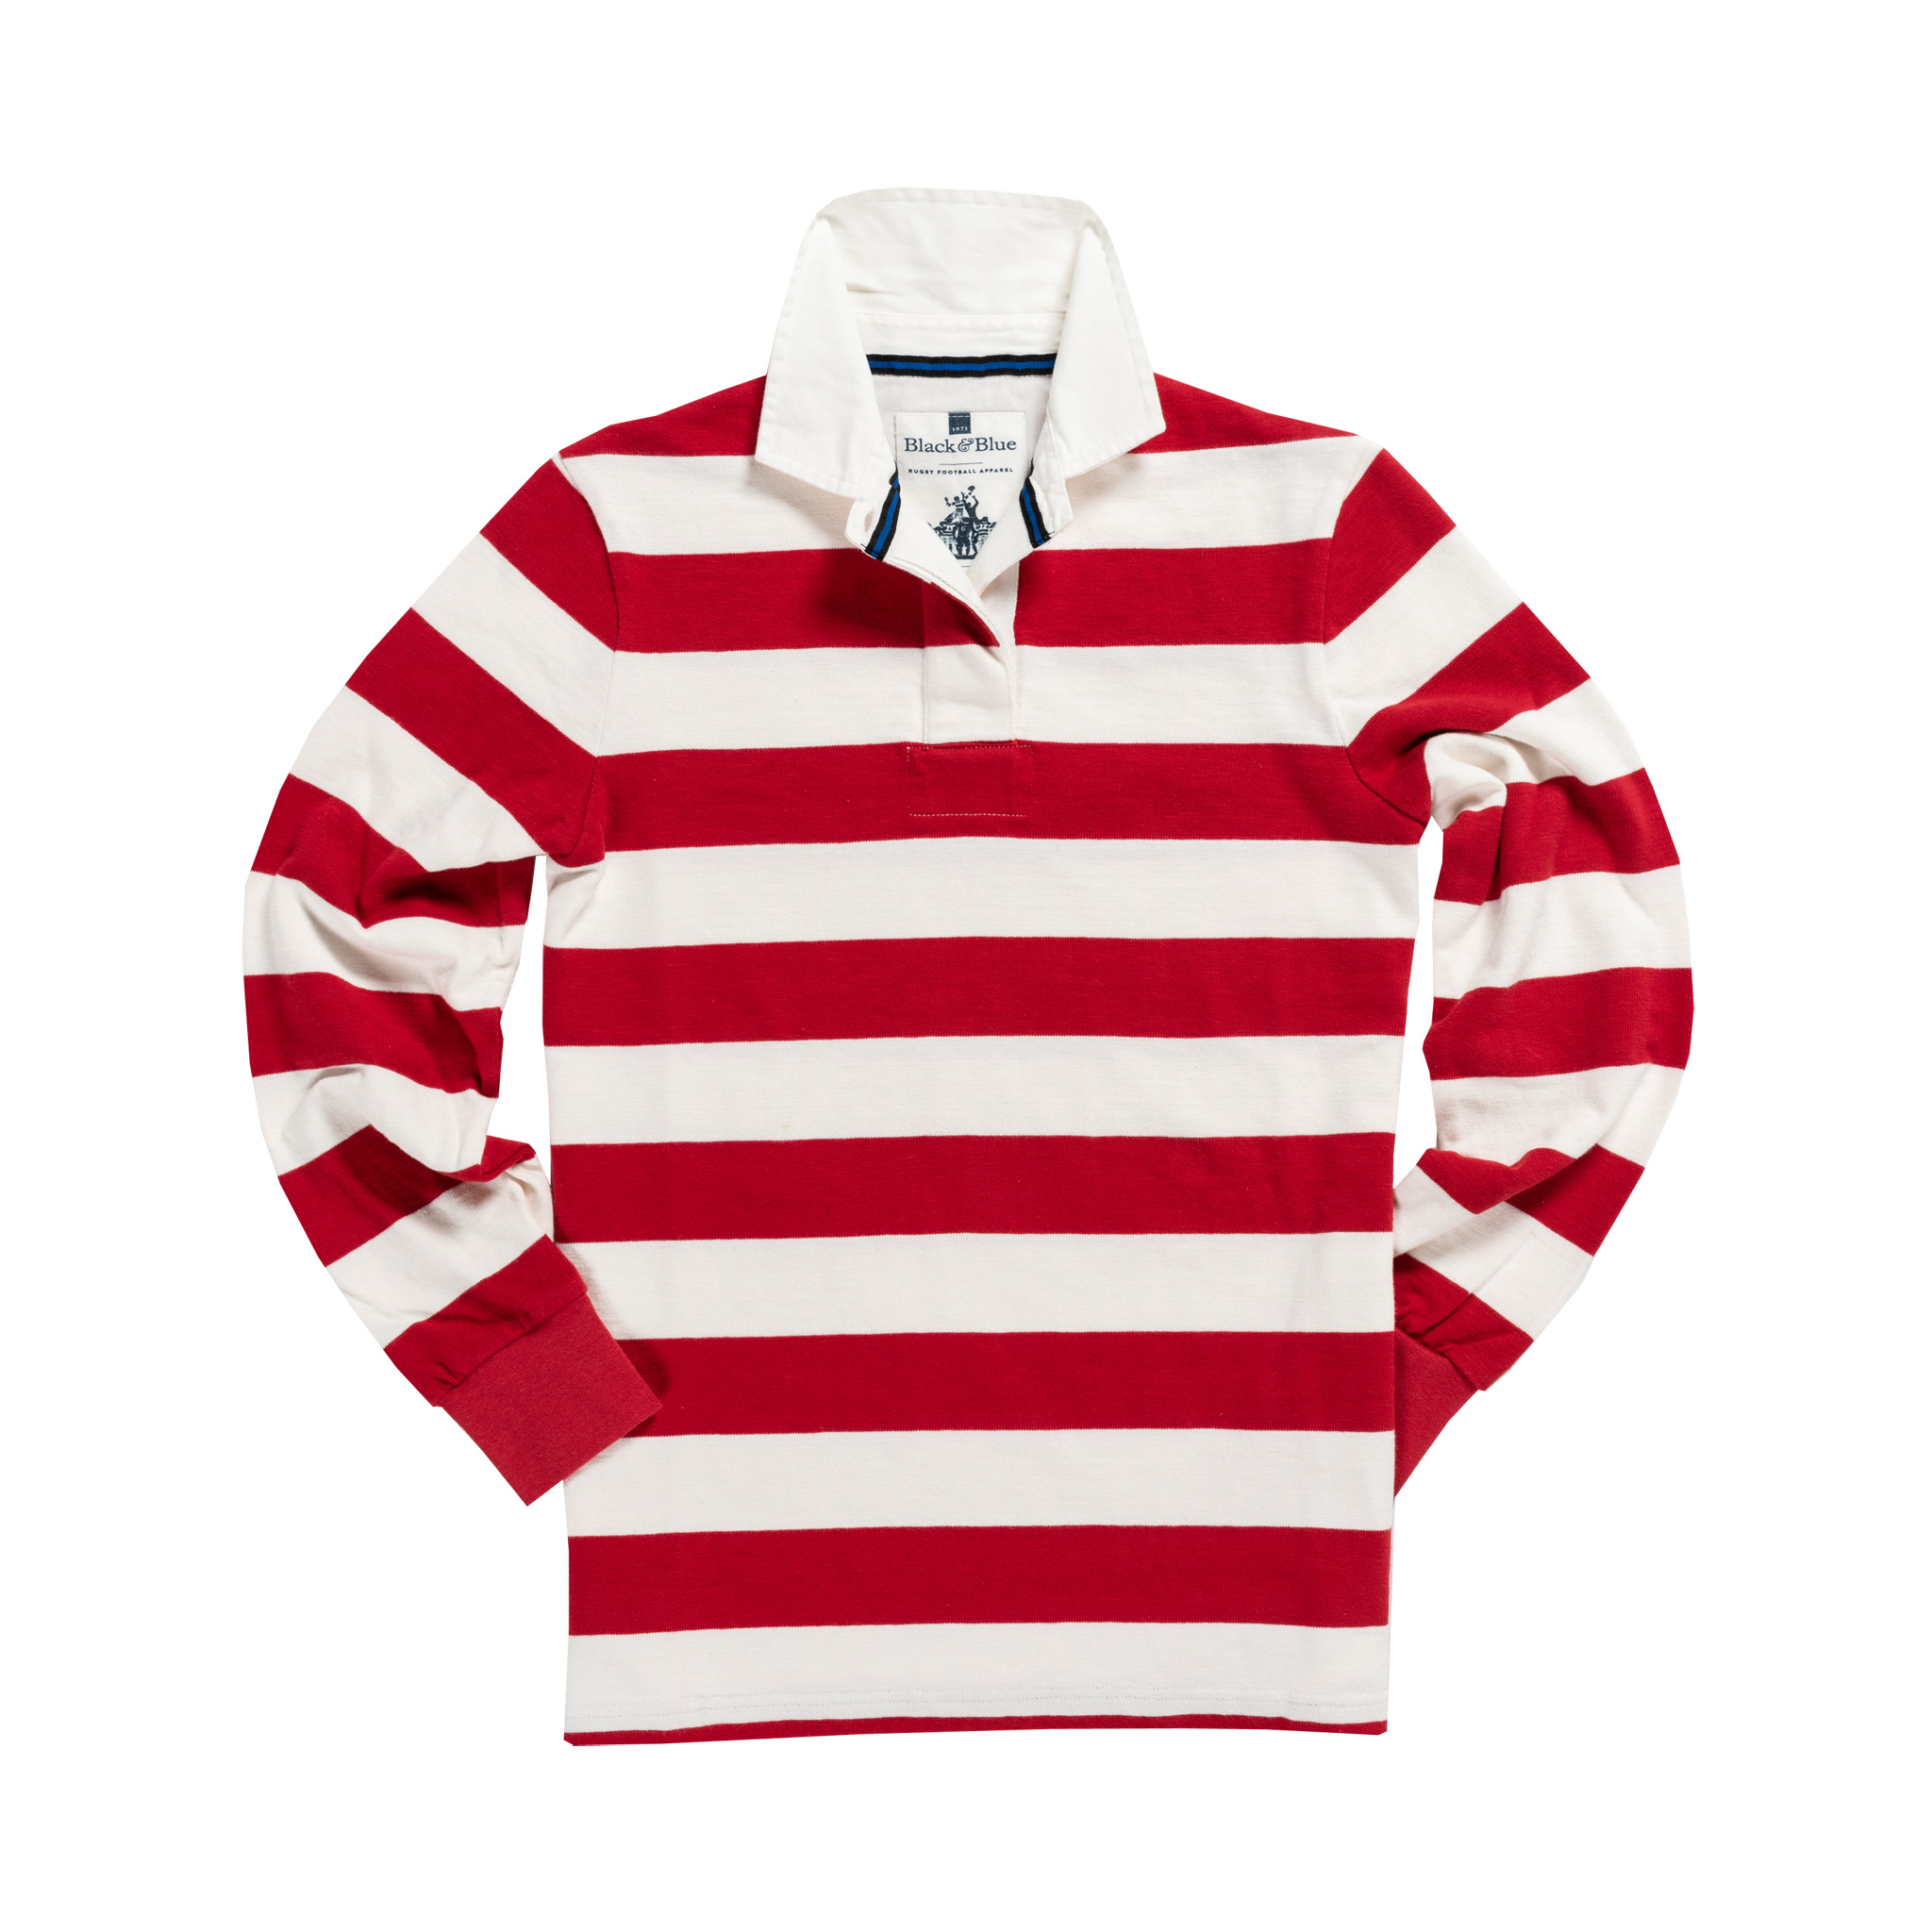 Women's Classic Red and White 1871 Vintage Rugby Shirt